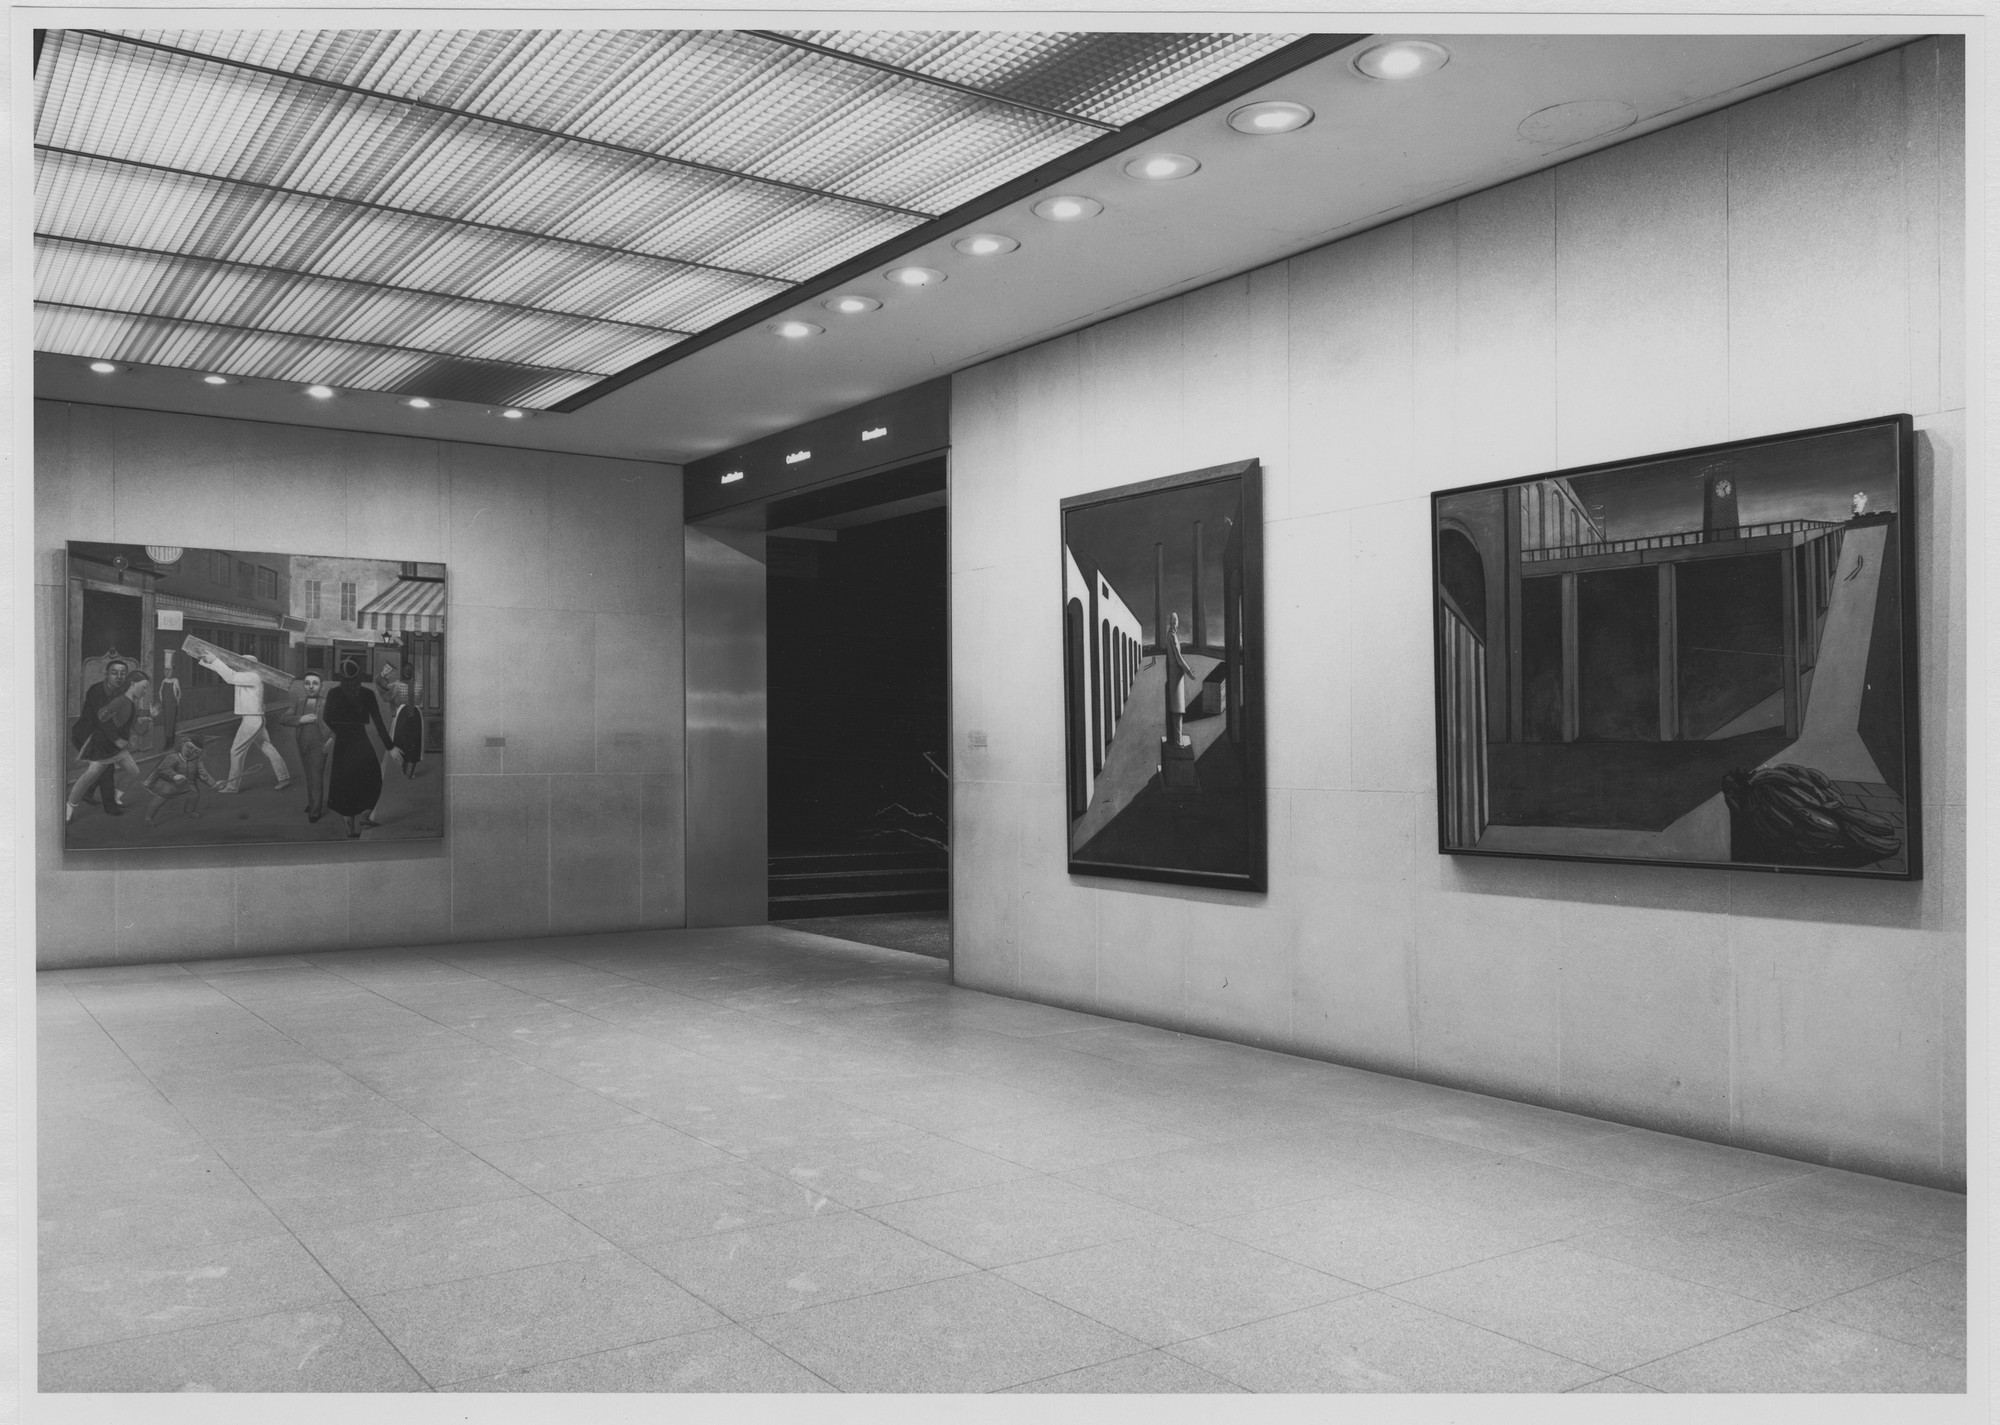 "Installation view of the exhibition, ""The James Thrall Soby Bequest"" March 22, 1979–May 9, 1979. Photographic Archive. The Museum of Modern Art Archives, New York. IN1255a.1. Photograph by Katherine Keller."